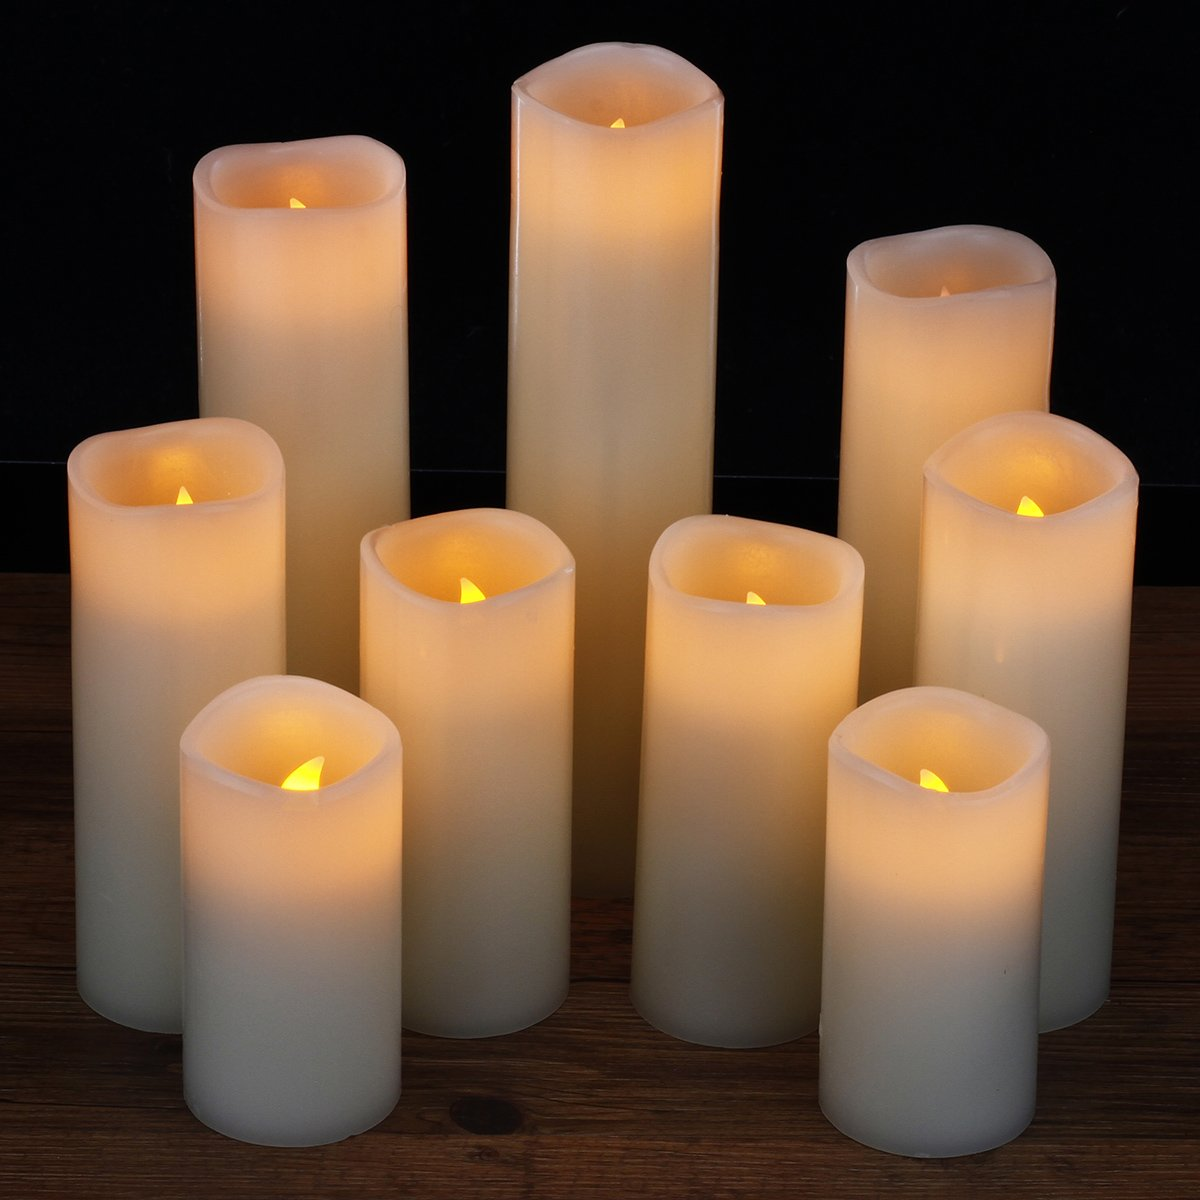 Flameless Candles, Led Candles Set of 9(H 4'' 5'' 6'' 7'' 8'' 9'' xD 2.2'') Ivory Real Wax Battery Candles With Remote Timer by (Batteries not included) by comenzar (Image #8)